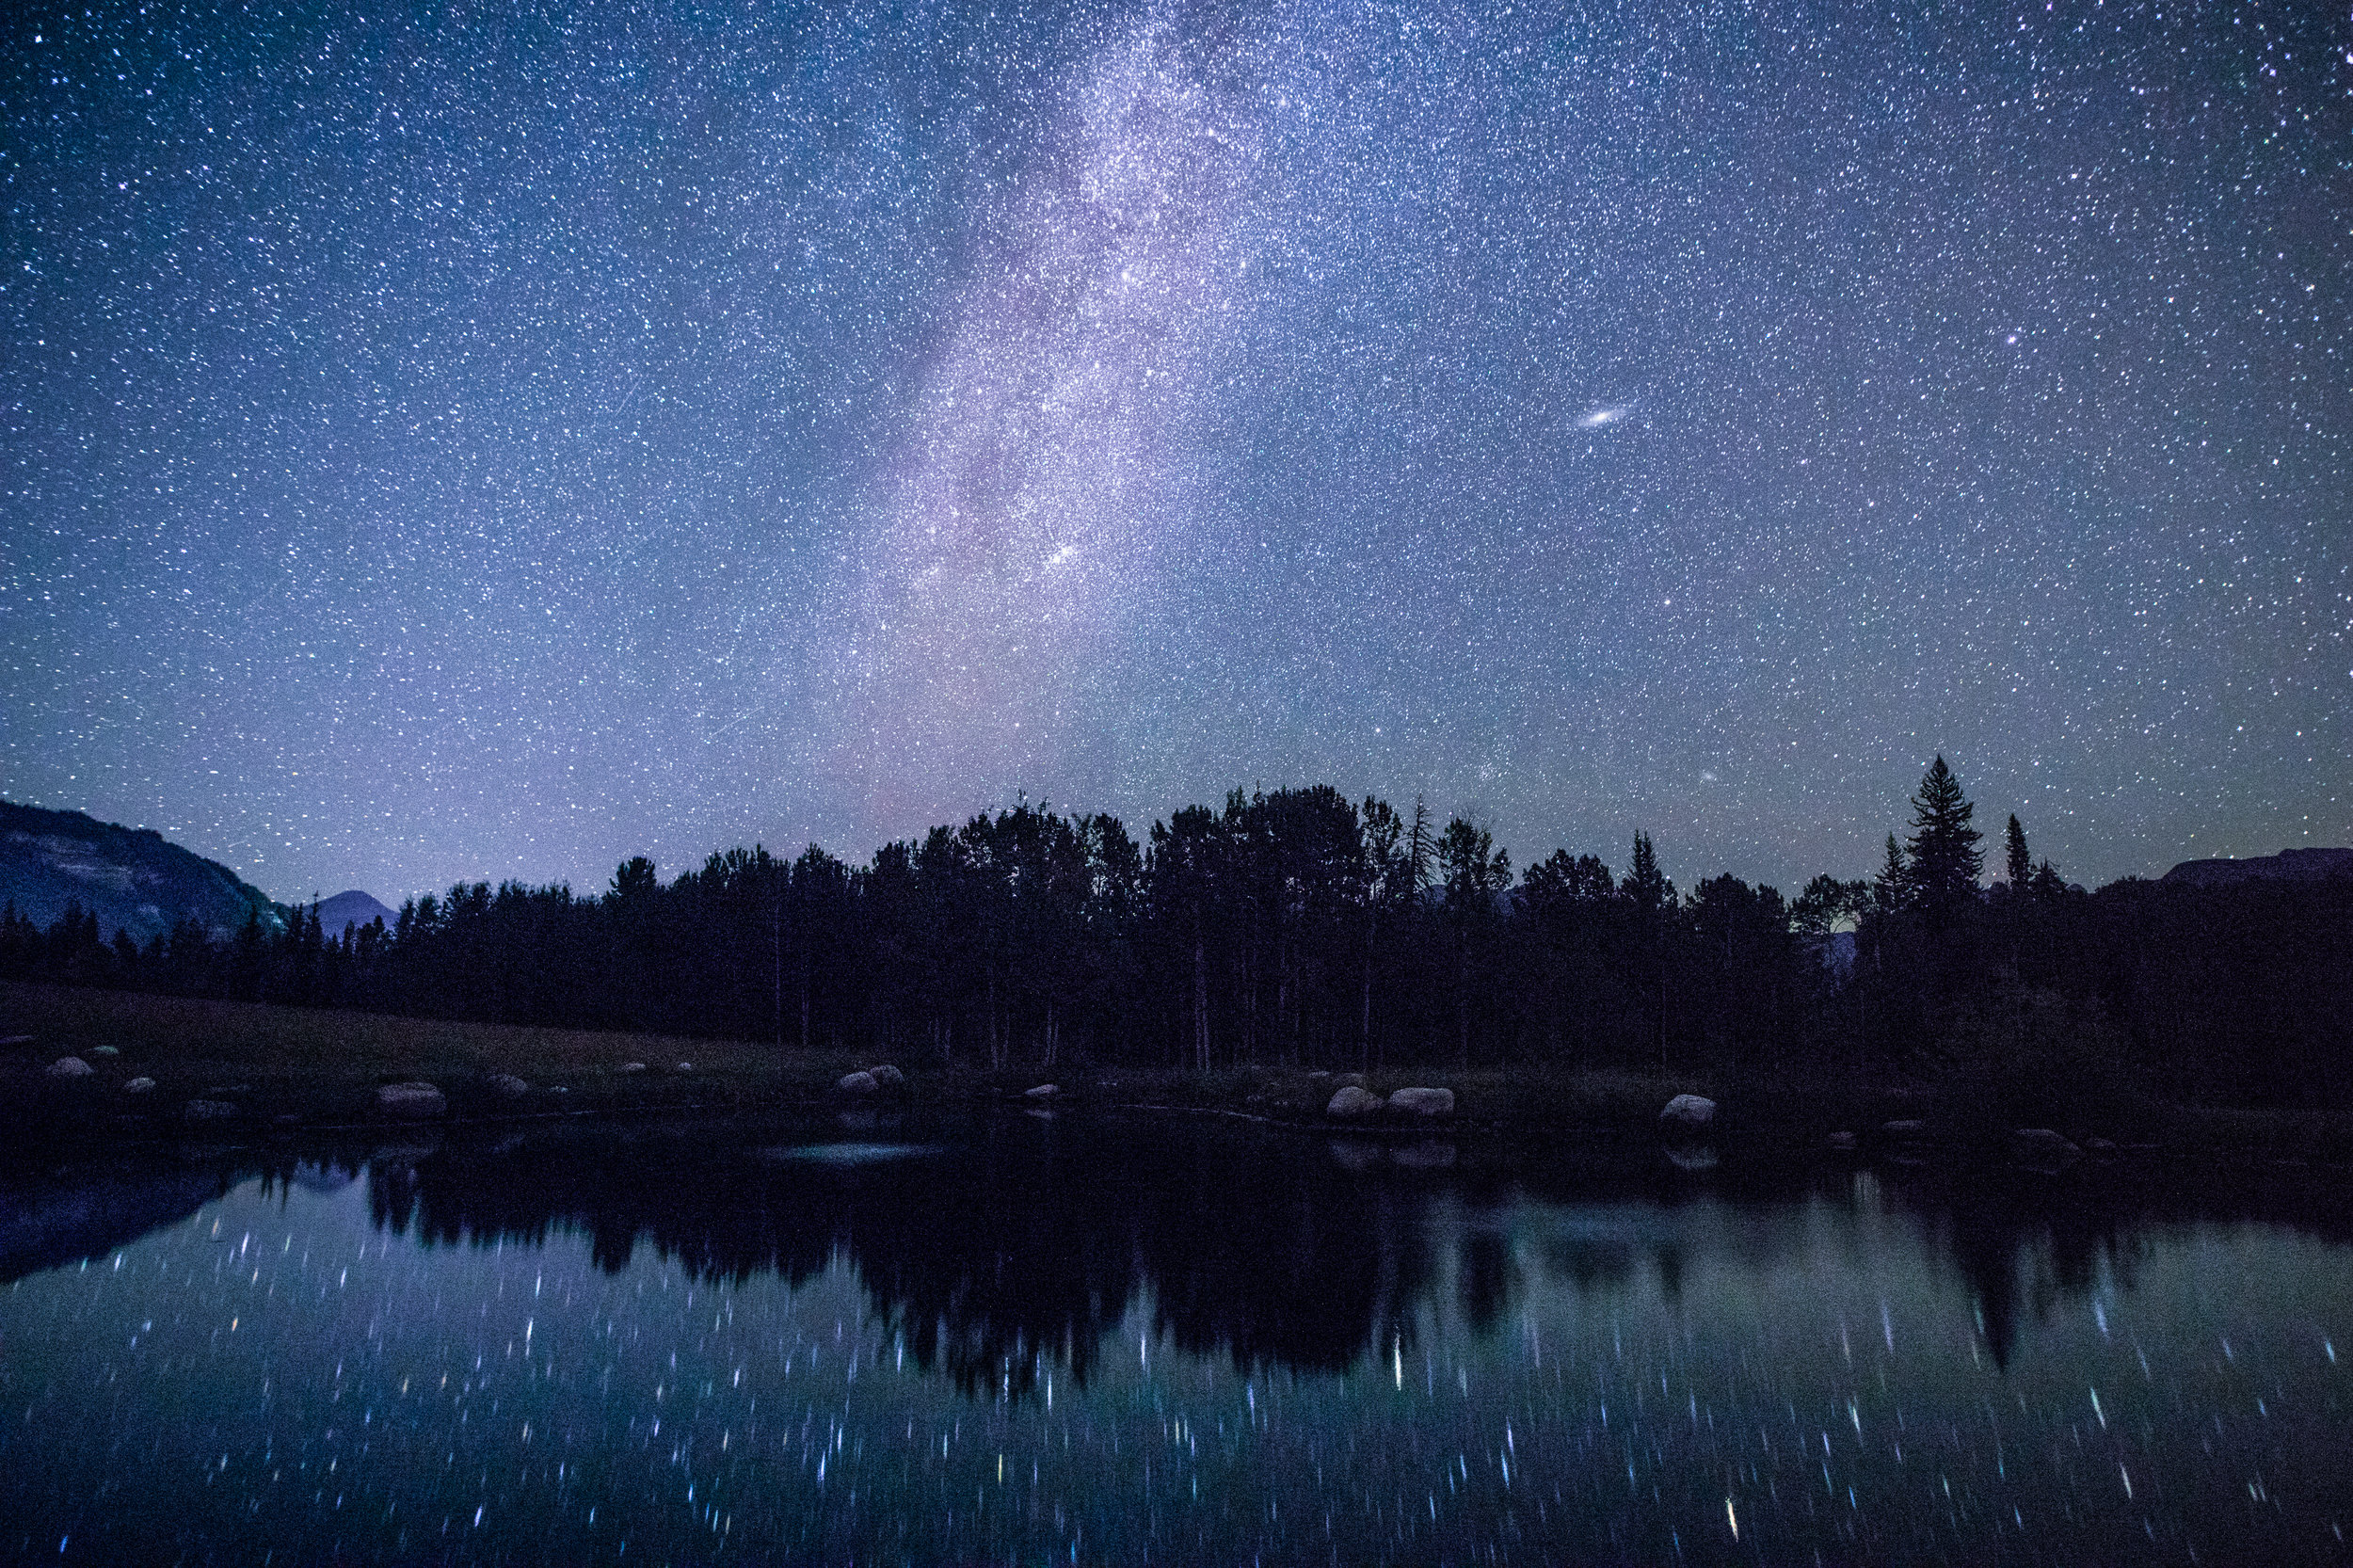 Milky Way Reflection in Pond, Image # 7413